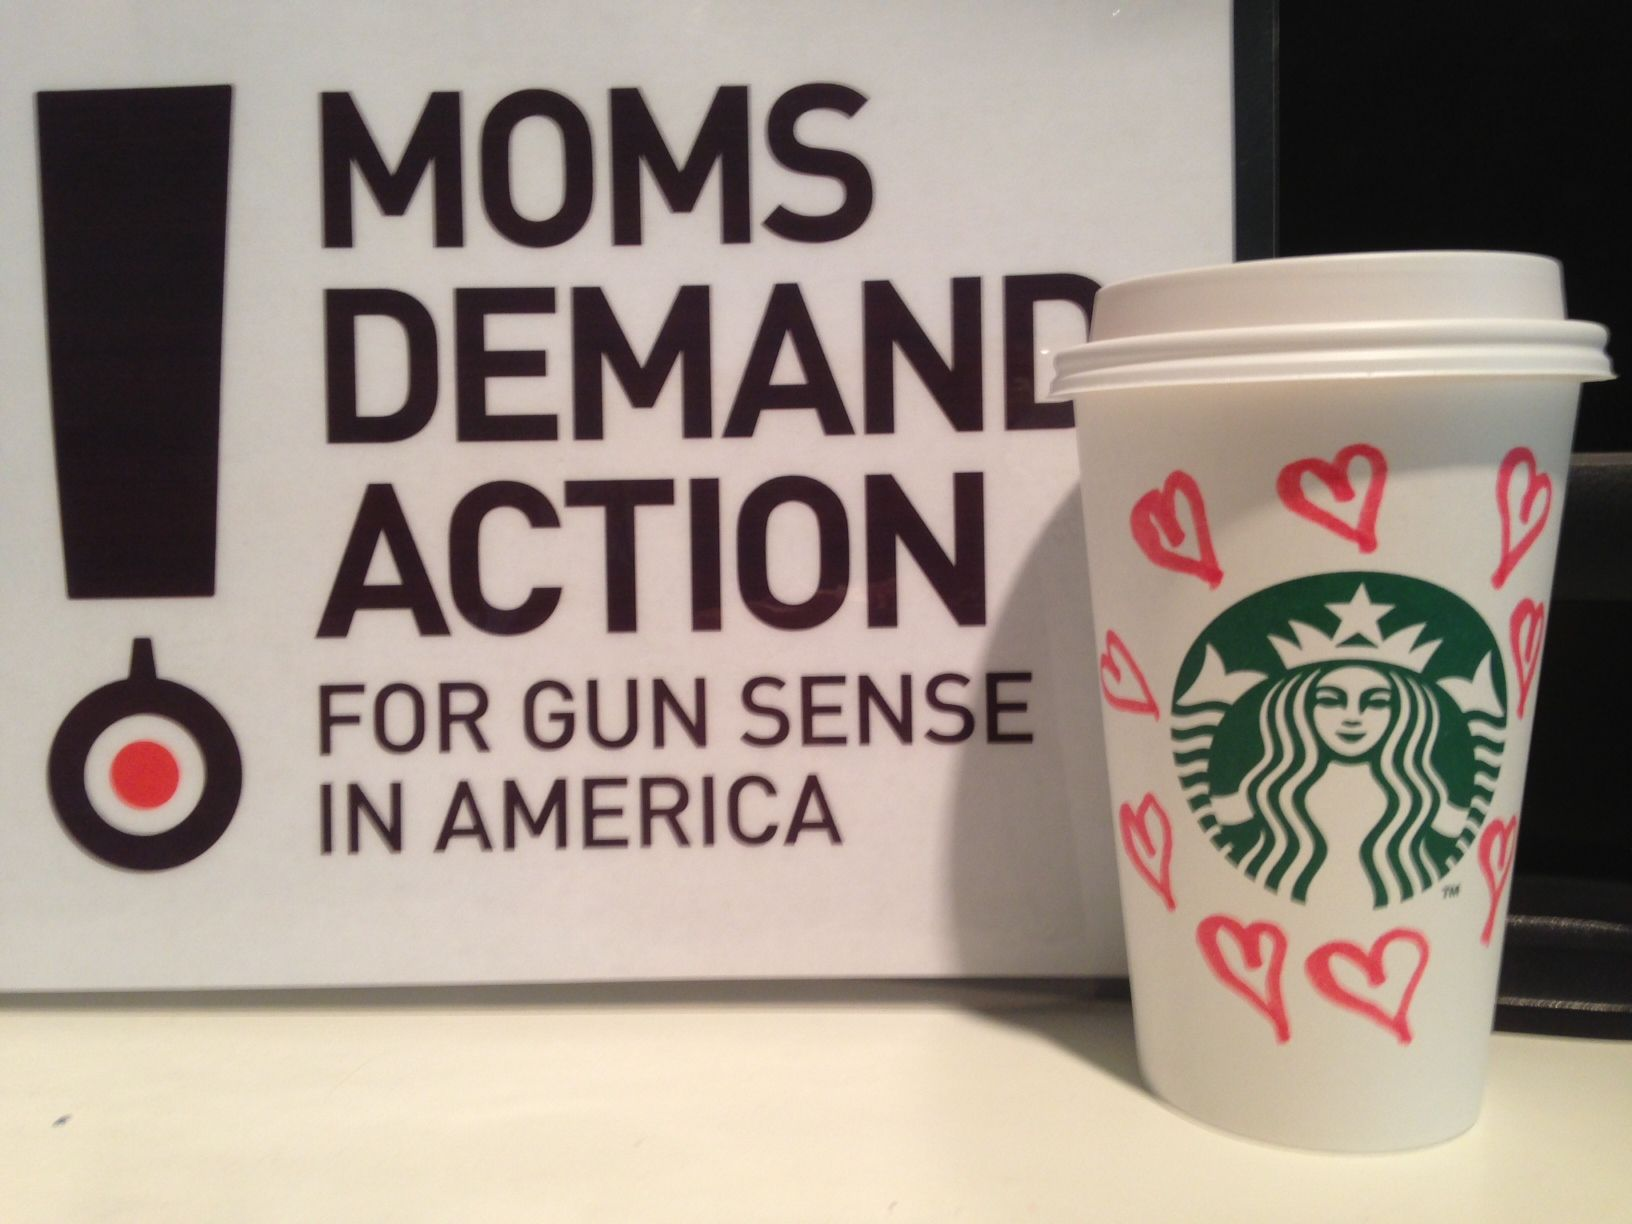 Today we celebrate that our voices were heard. Starbucks will show gun sense by asking customers to leave guns at home. Join us and #CelebrateStarbucks